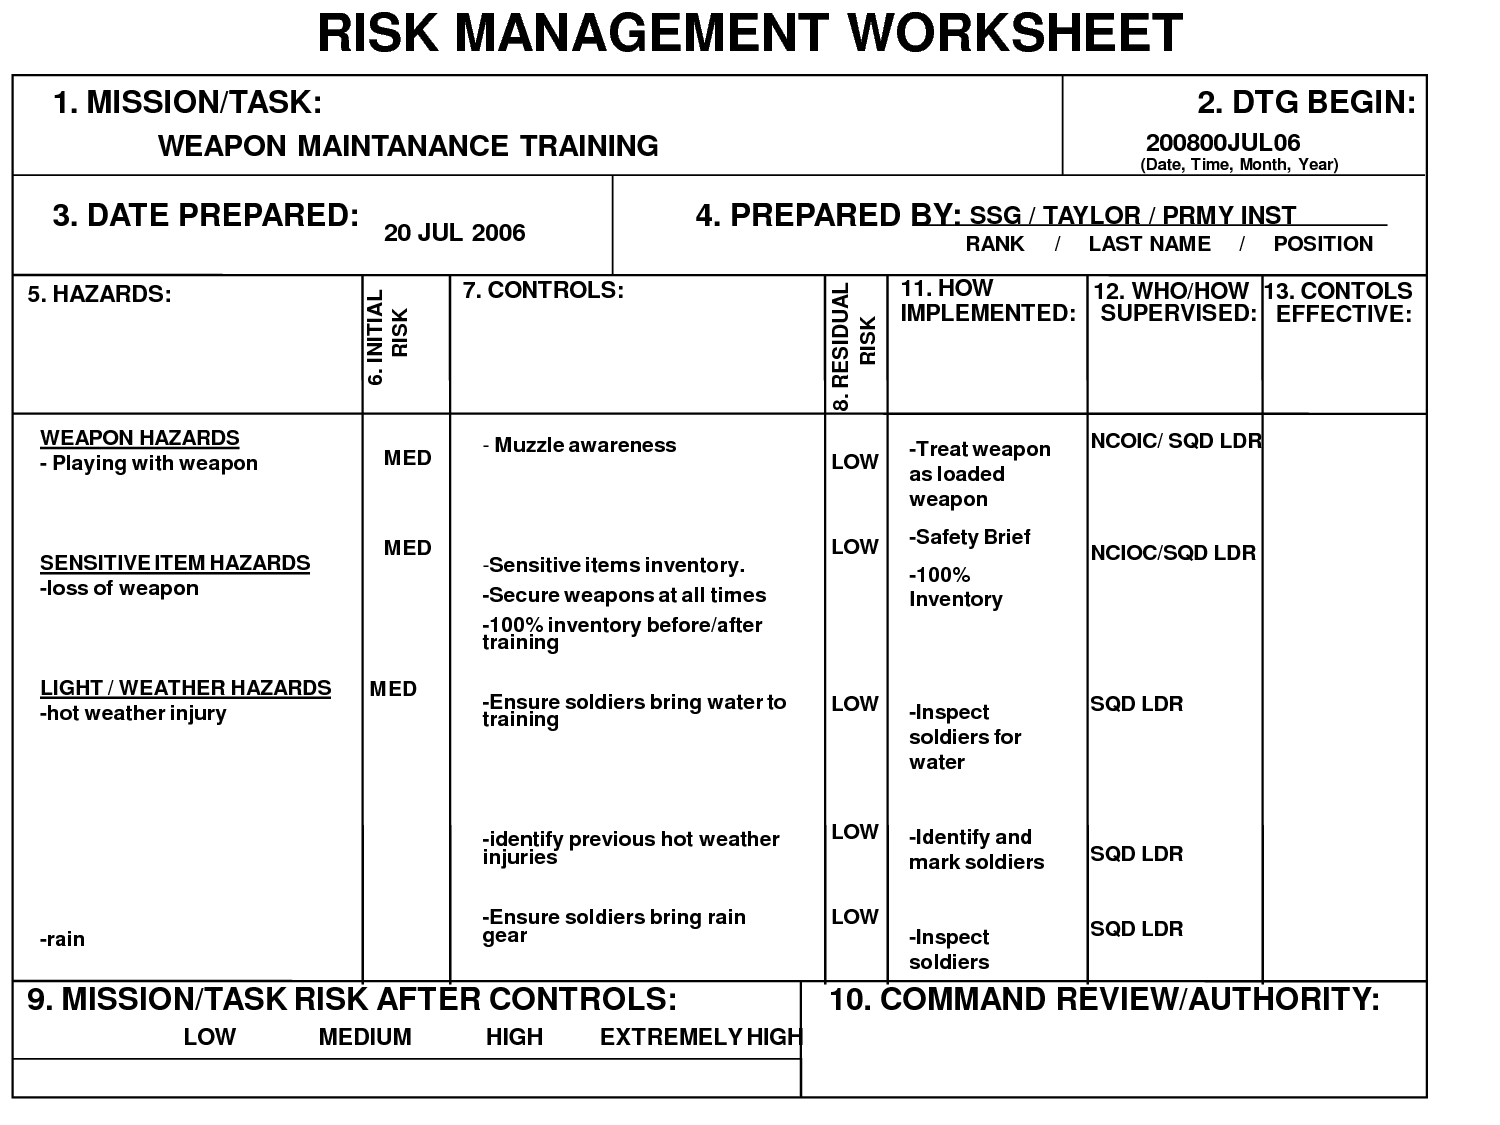 Example Risk Assessment Worksheet Pictures to Pin on Pinterest ...